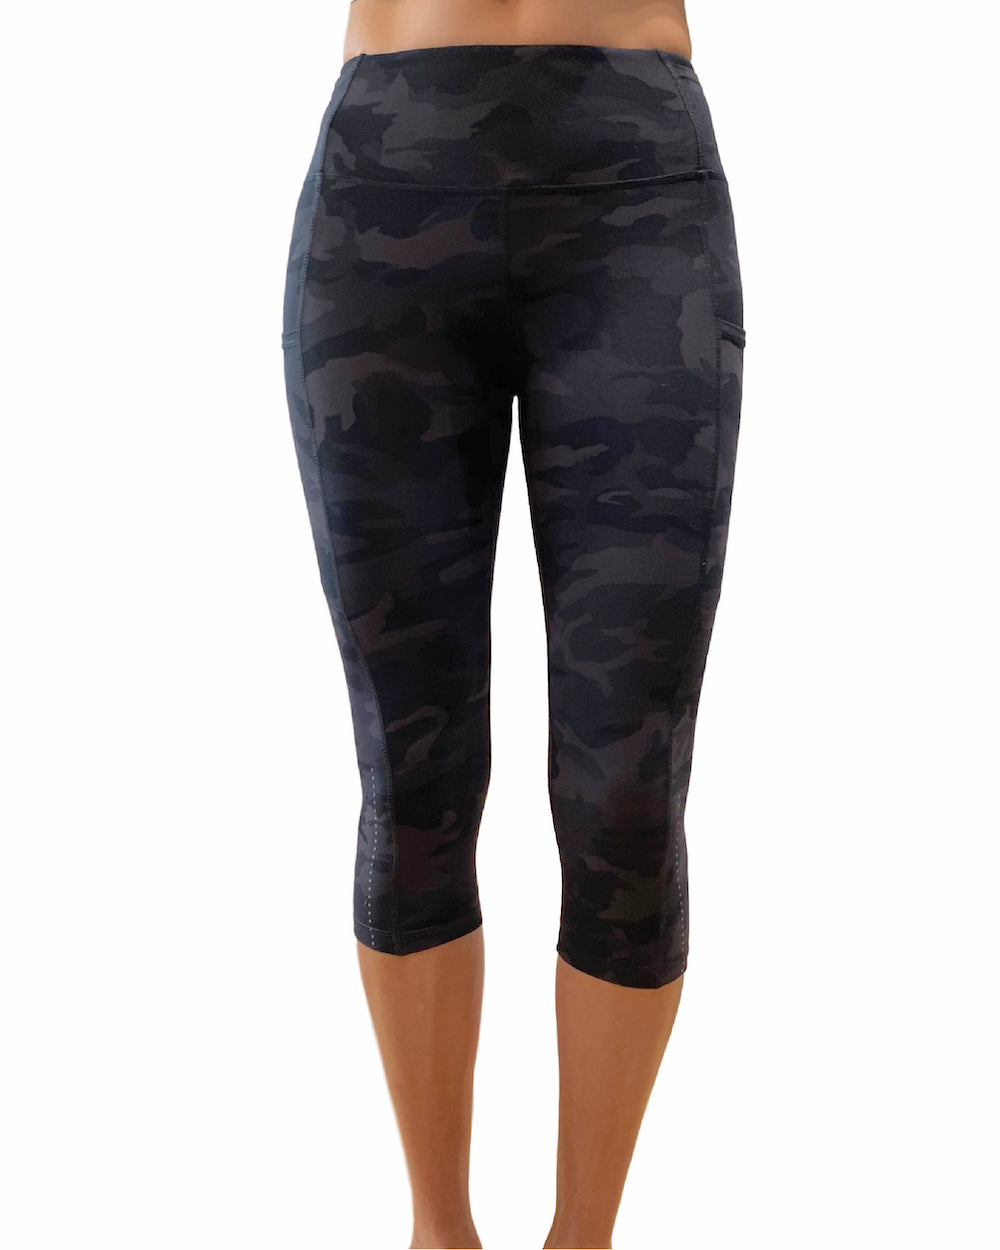 Women's Camo Crop Legging